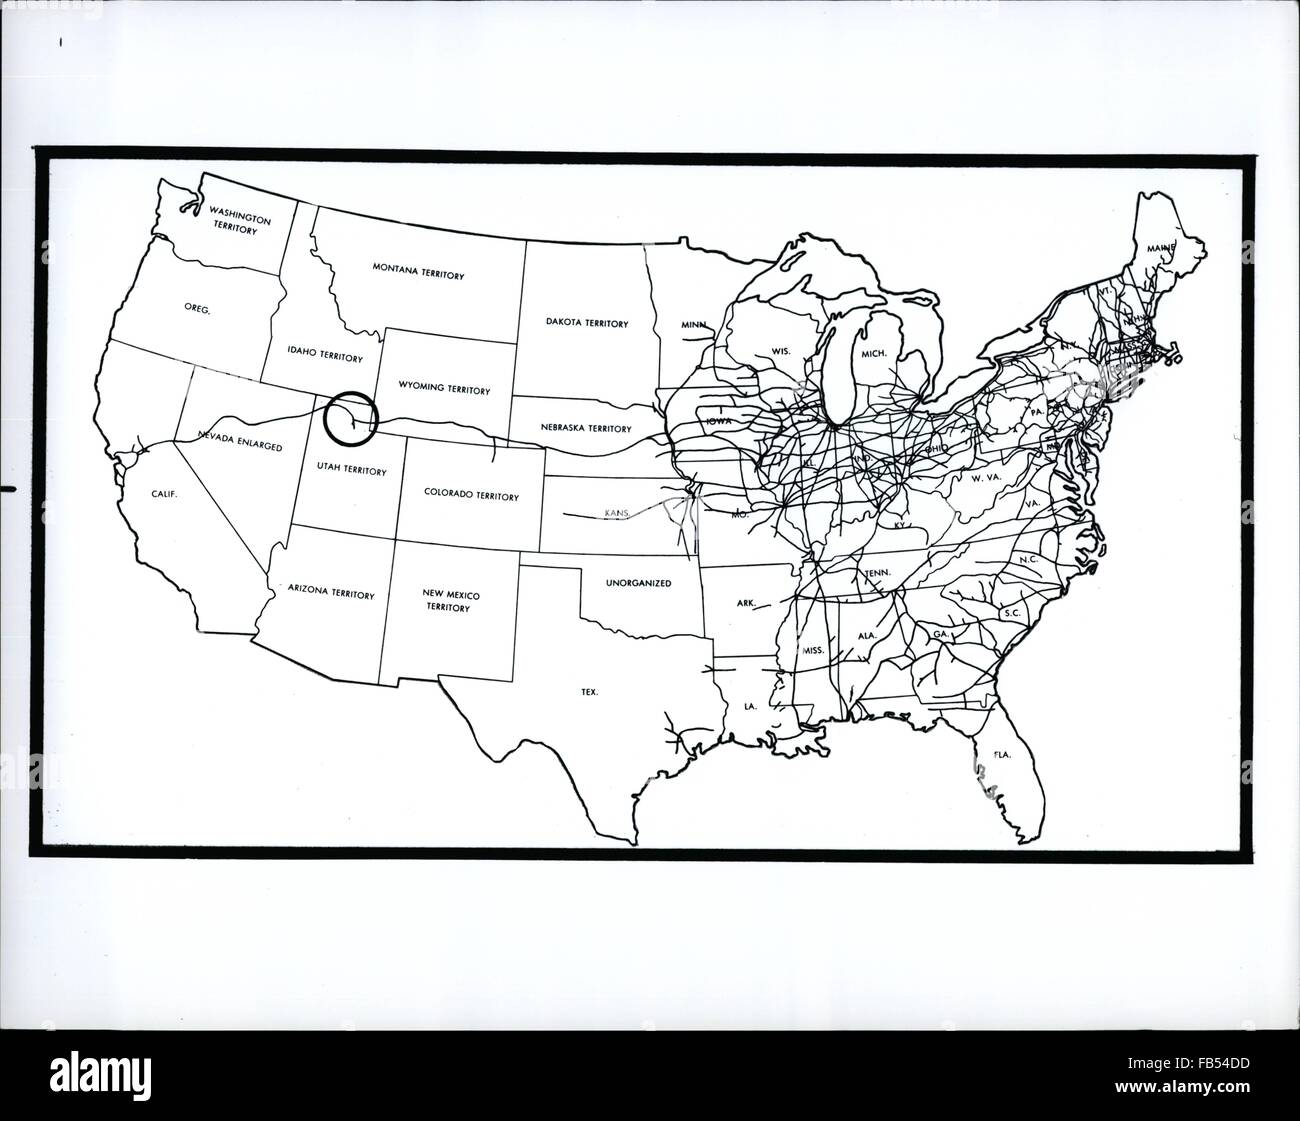 centennial of transcontinental railroad link up in us map shows railroad lines in the us in 1870 circle marks spot where transcontinental line met in